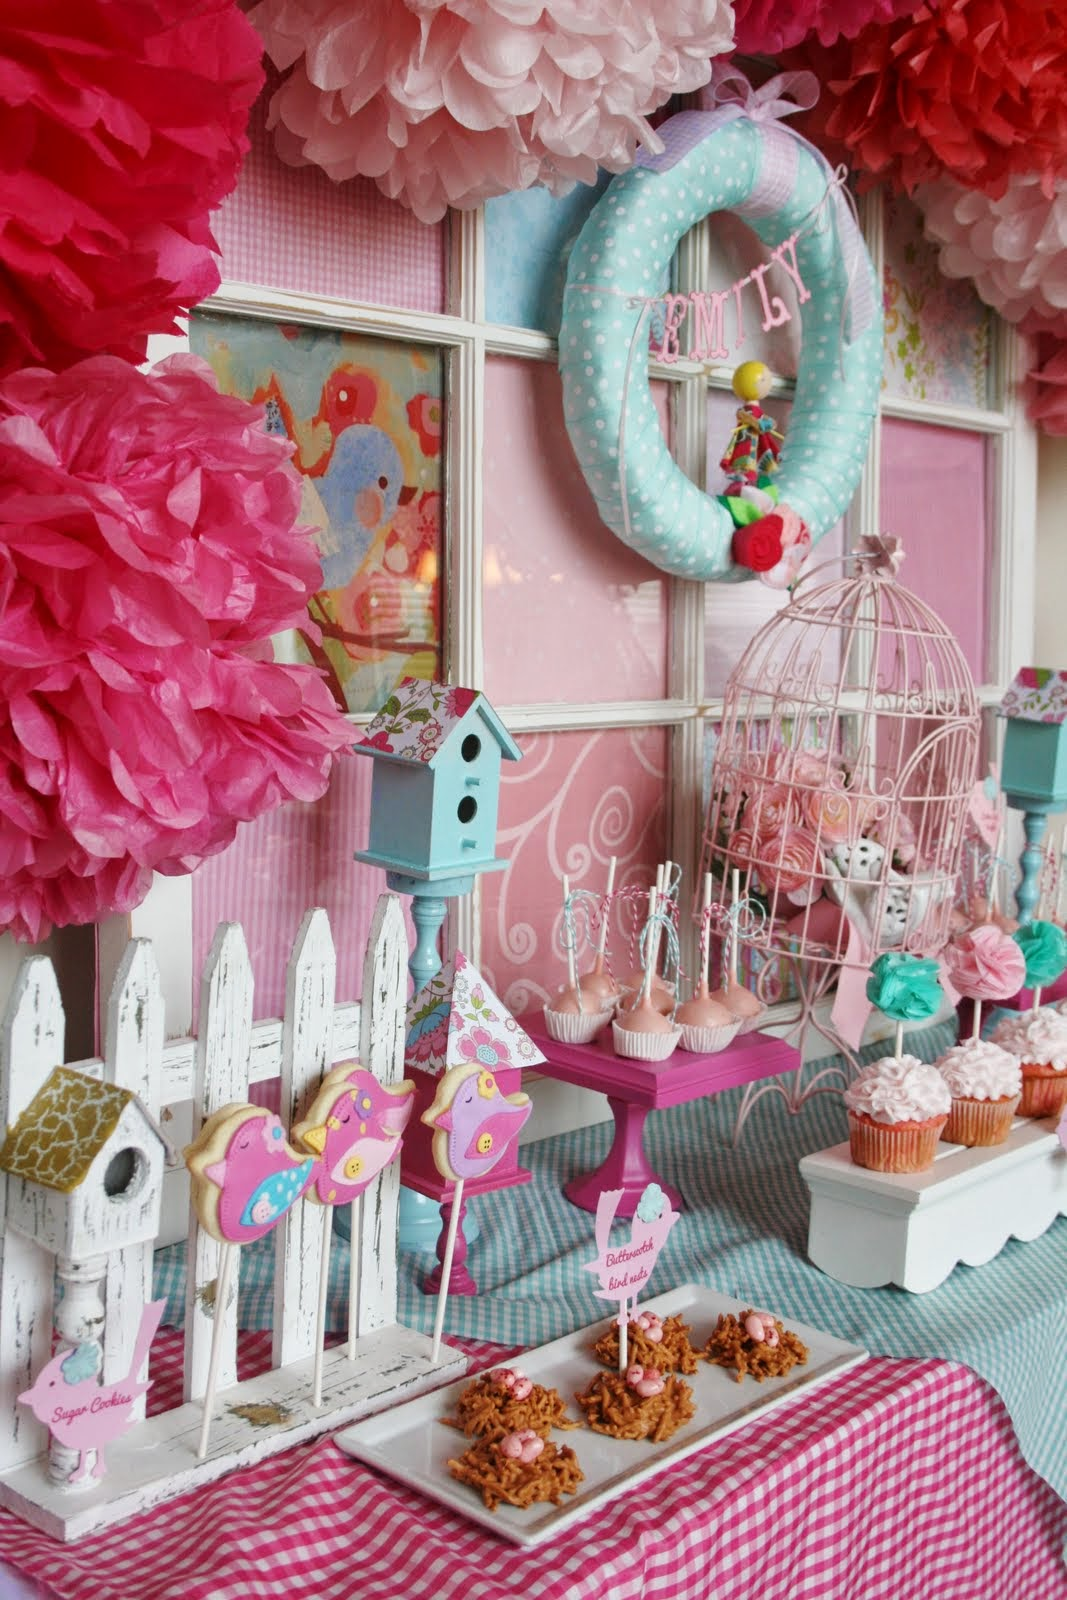 All about women 39 s things baby shower decorating ideas for - Decoration baby shower girl ...